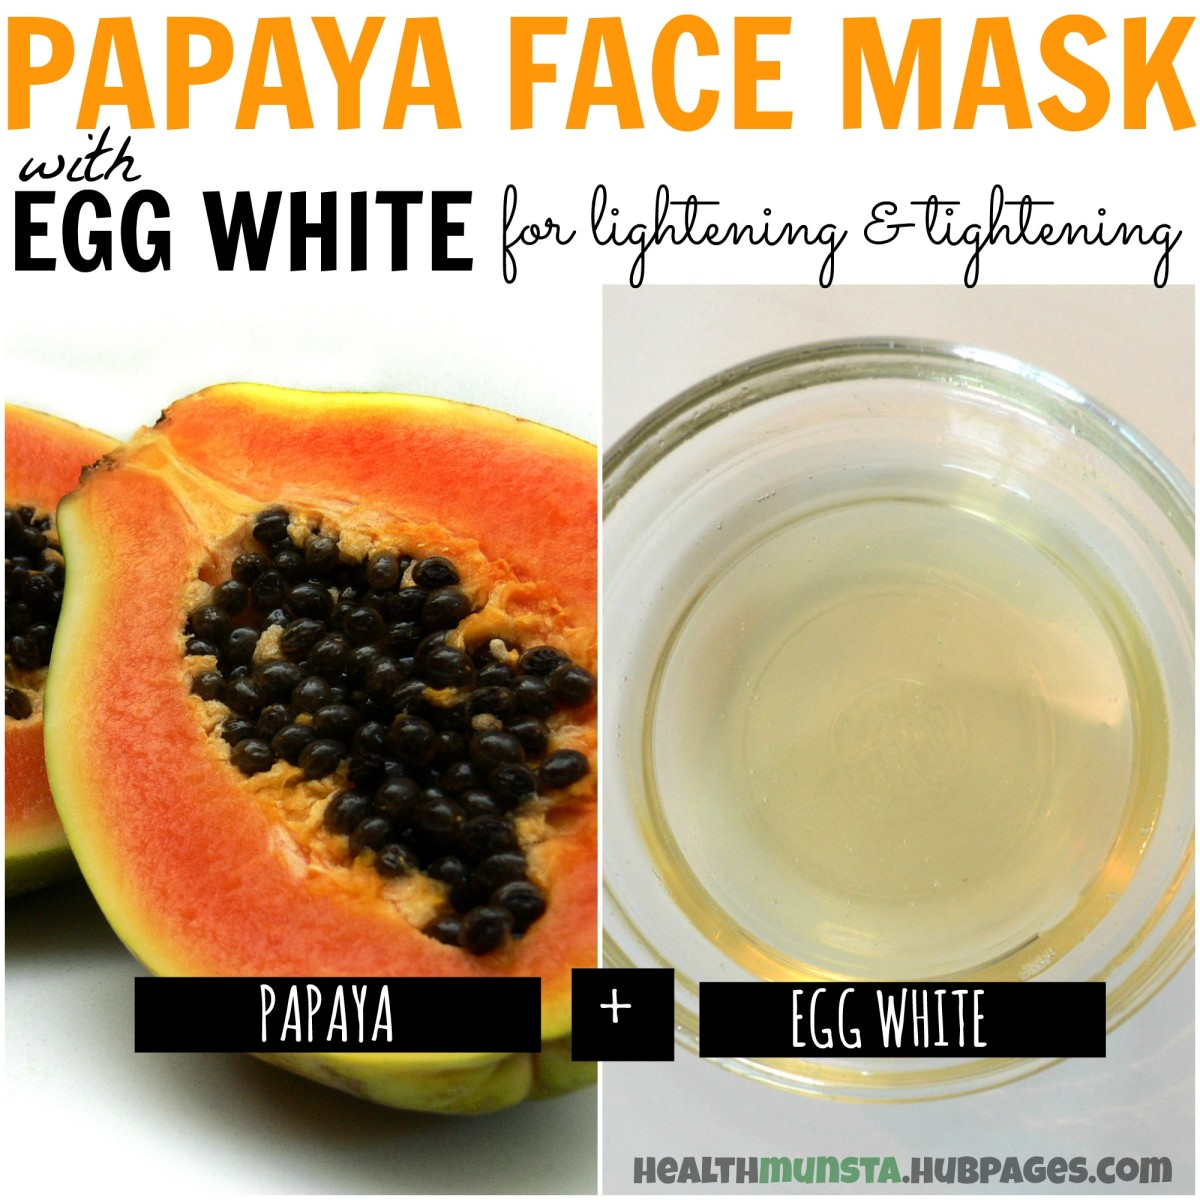 Skin while the egg white helps tighten pores giving you a flawless